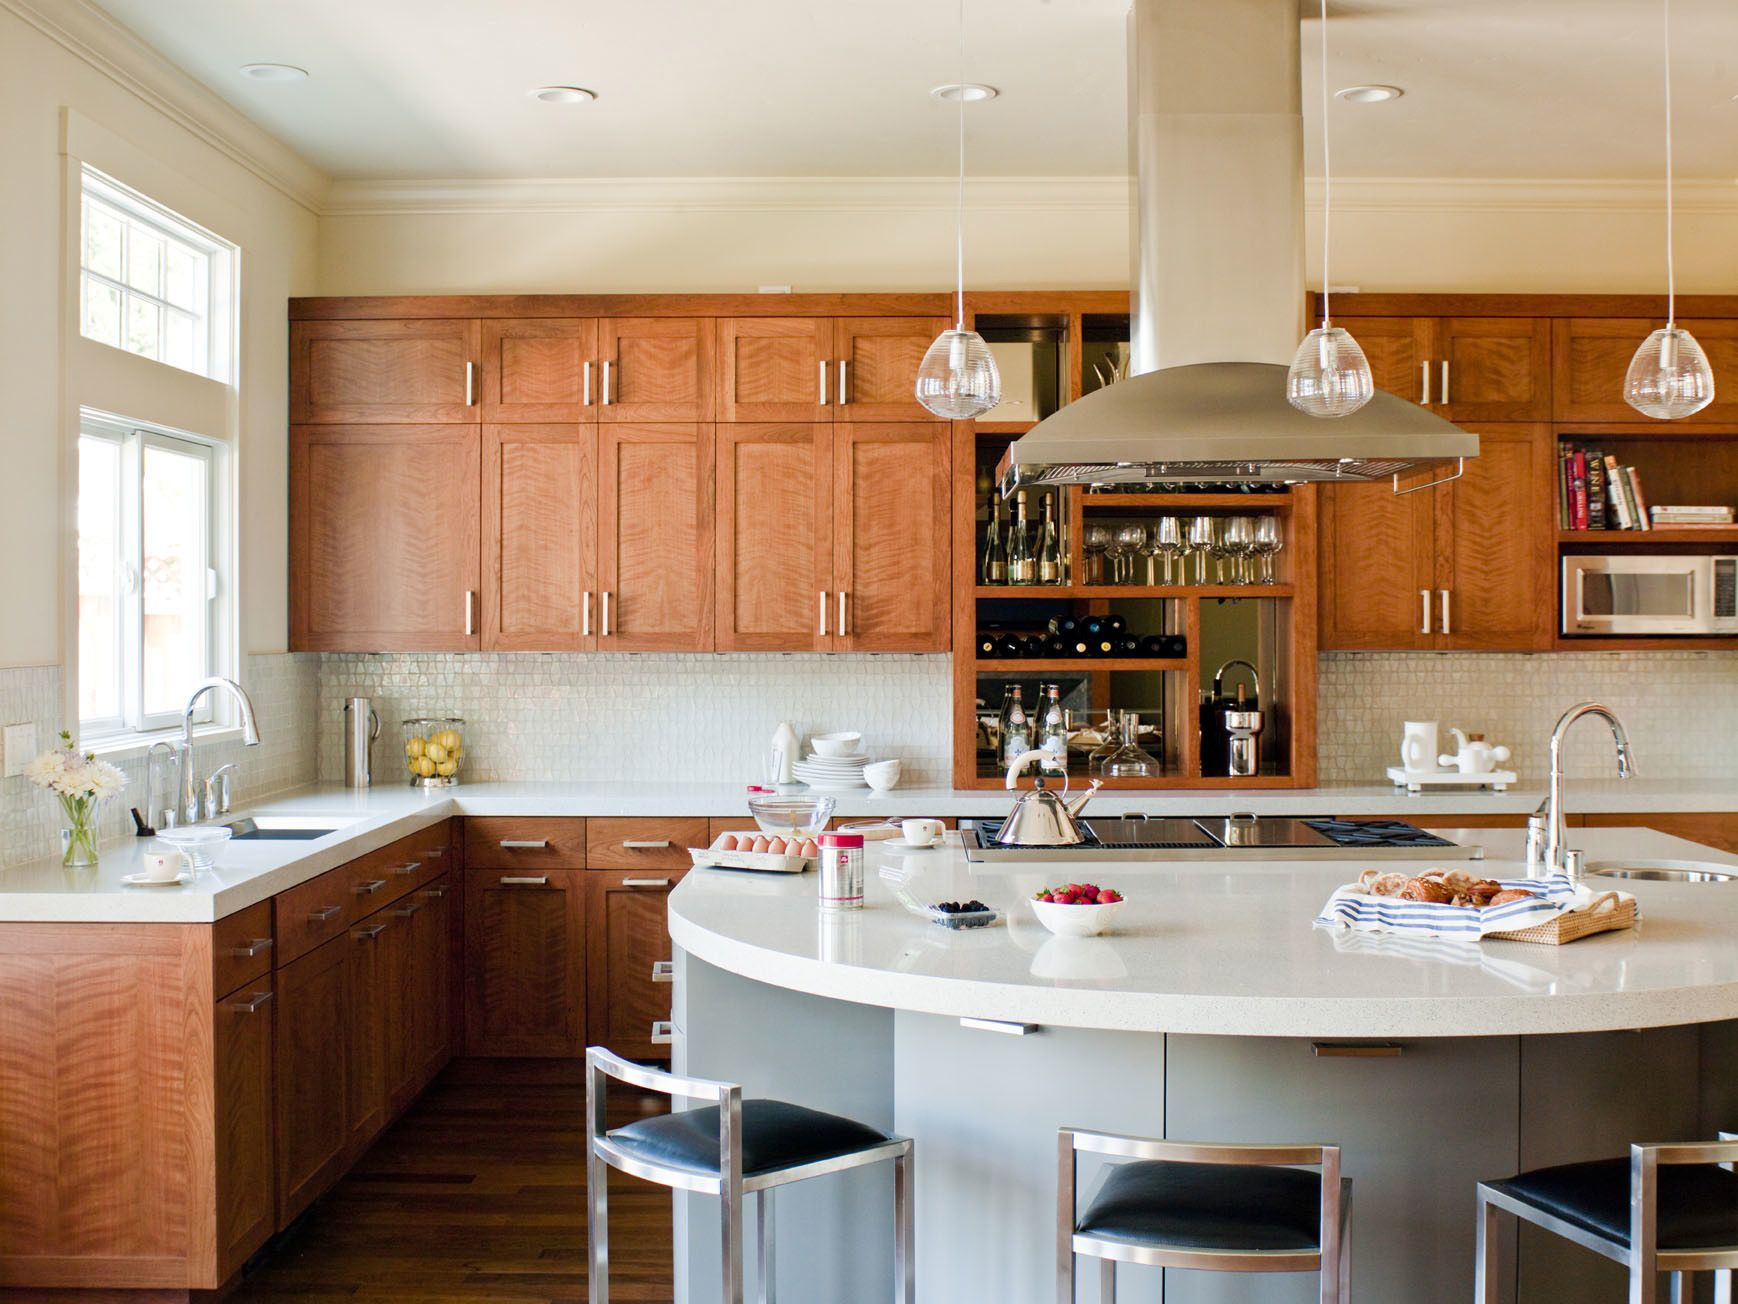 Kitchen Inspiration Kitchen Cool And Charm White Marble Countertops Kitchen  Island With Glass Unique Pendant Lights Also Wooden Natural Kitchen Cabinet  At ...